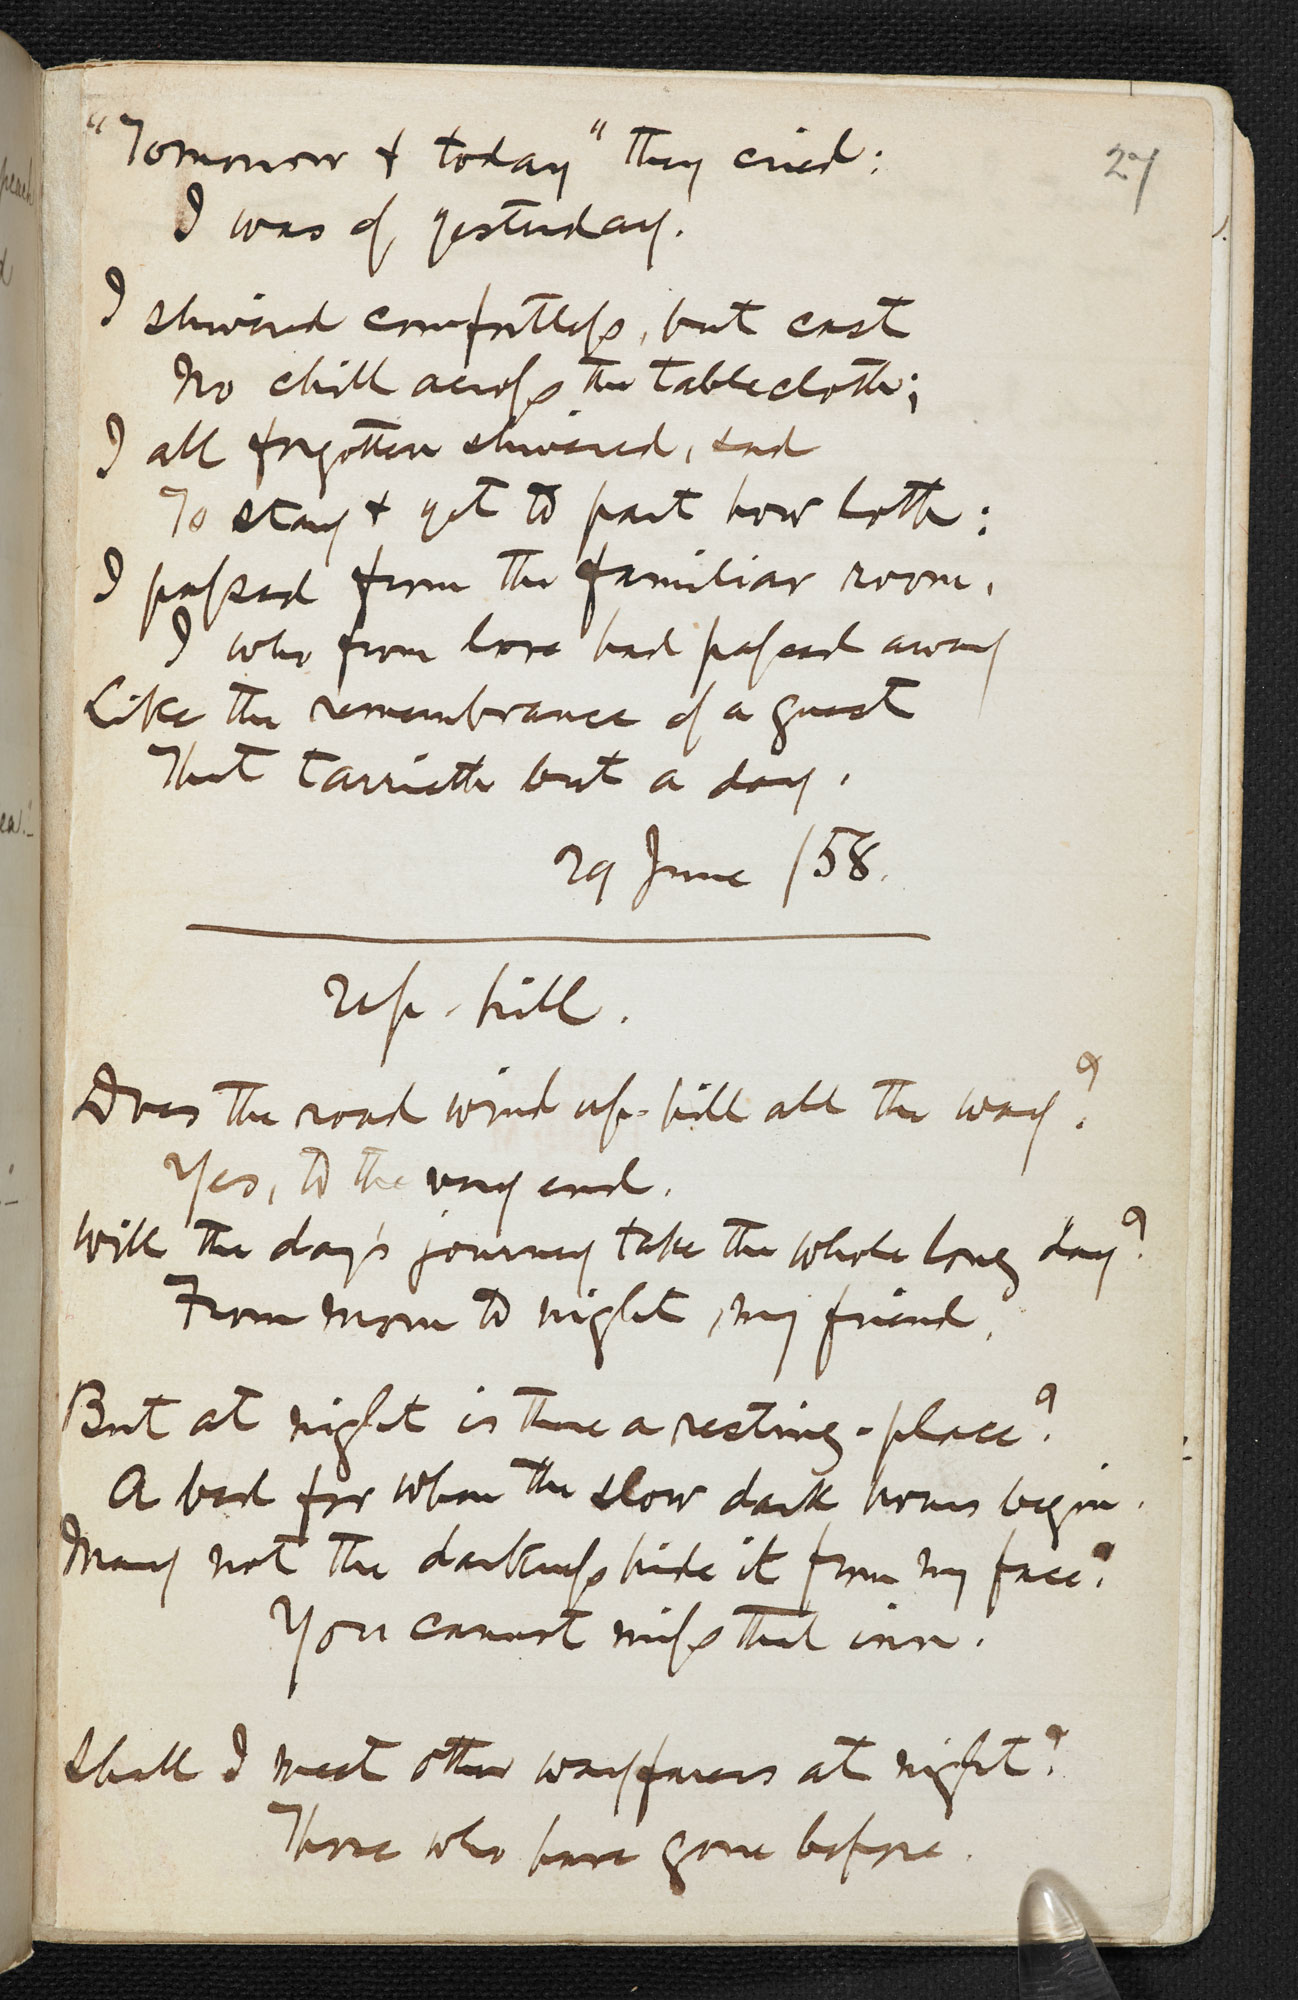 Christina Rossetti: religious poetry - The British Library